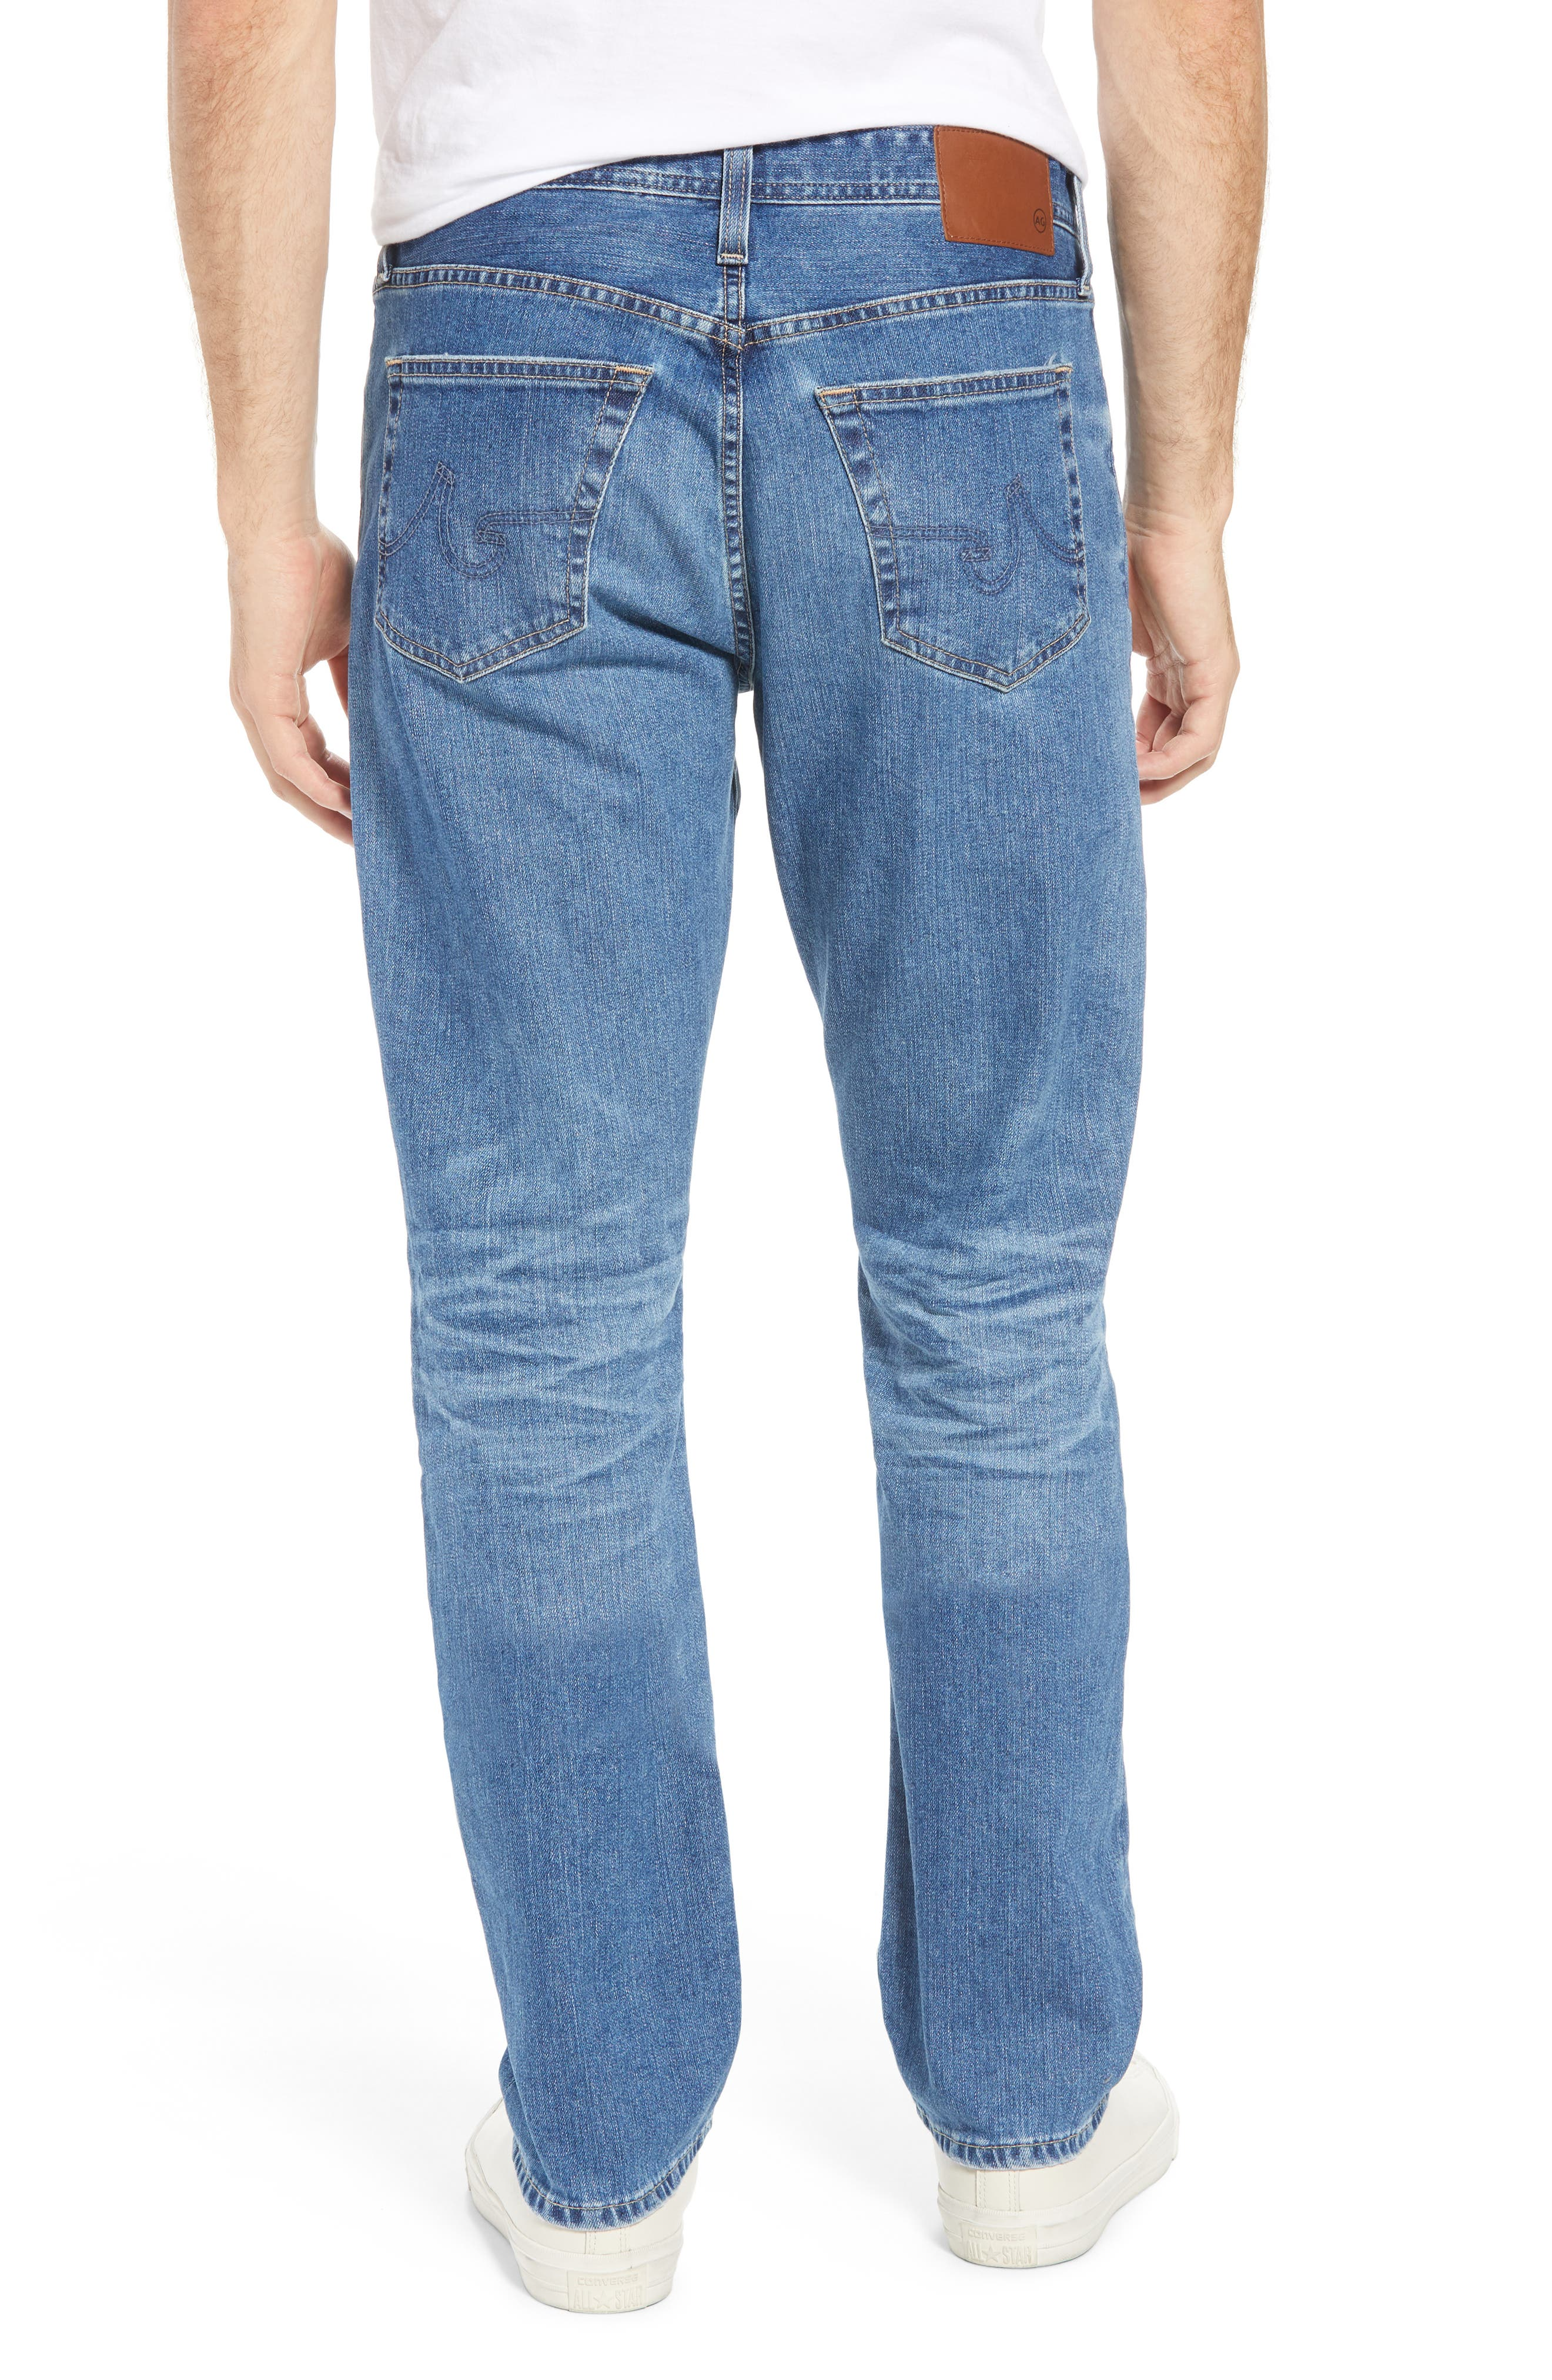 Everett Slim Straight Leg Jeans,                             Alternate thumbnail 2, color,                             15 YEARS OPEN ROAD